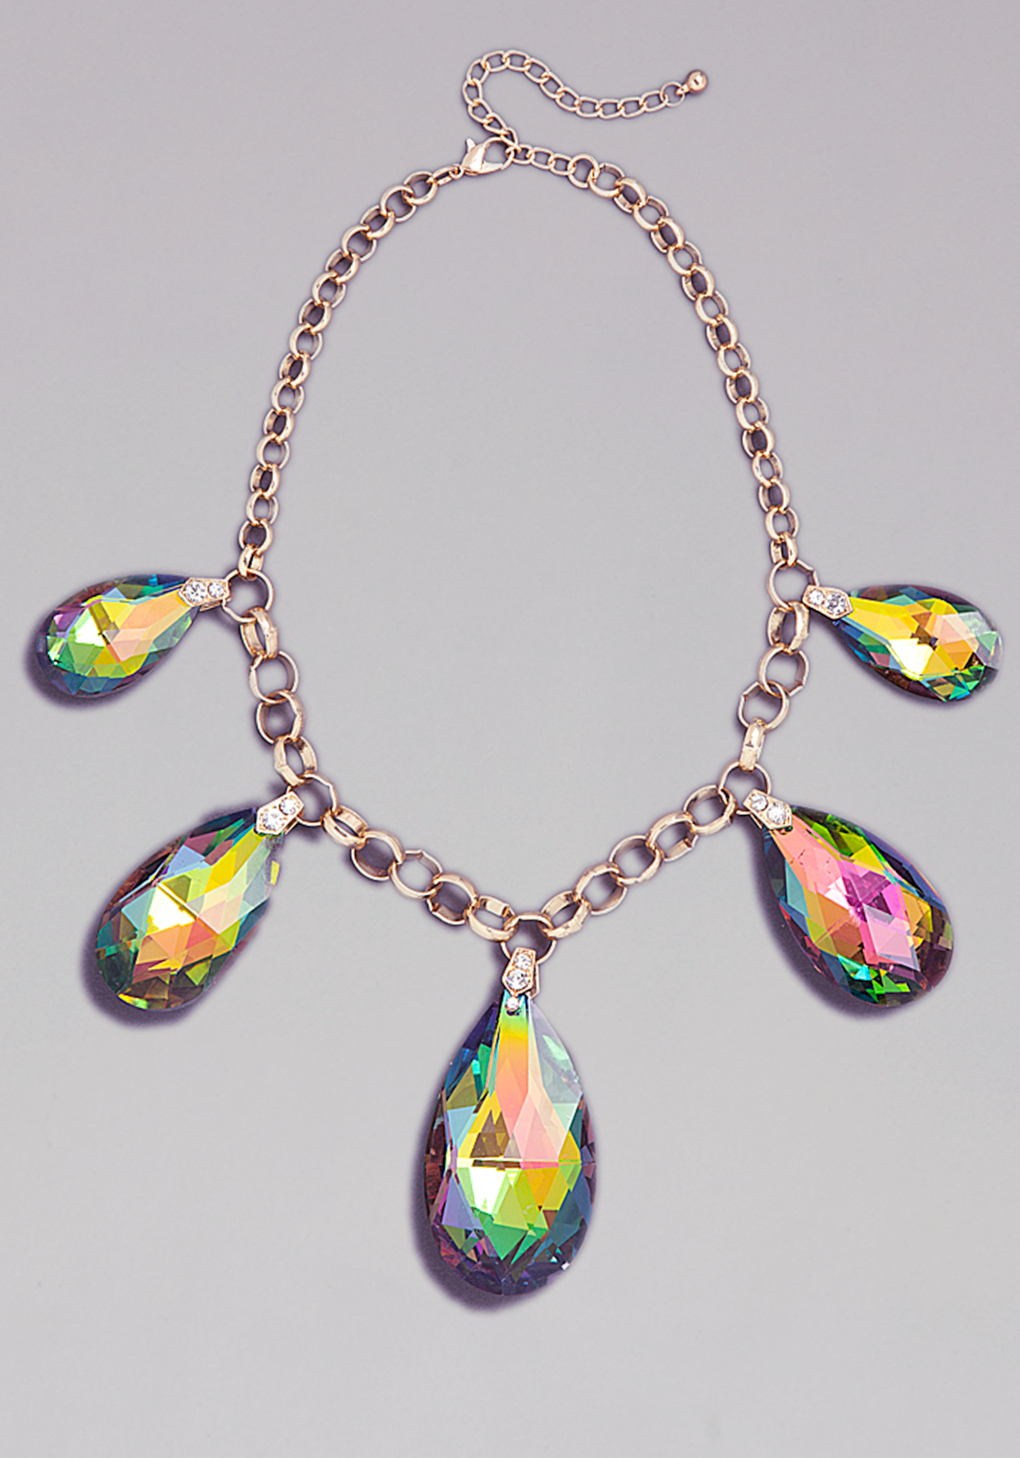 Lyst Bebe Iridescent Gems Necklace In Metallic